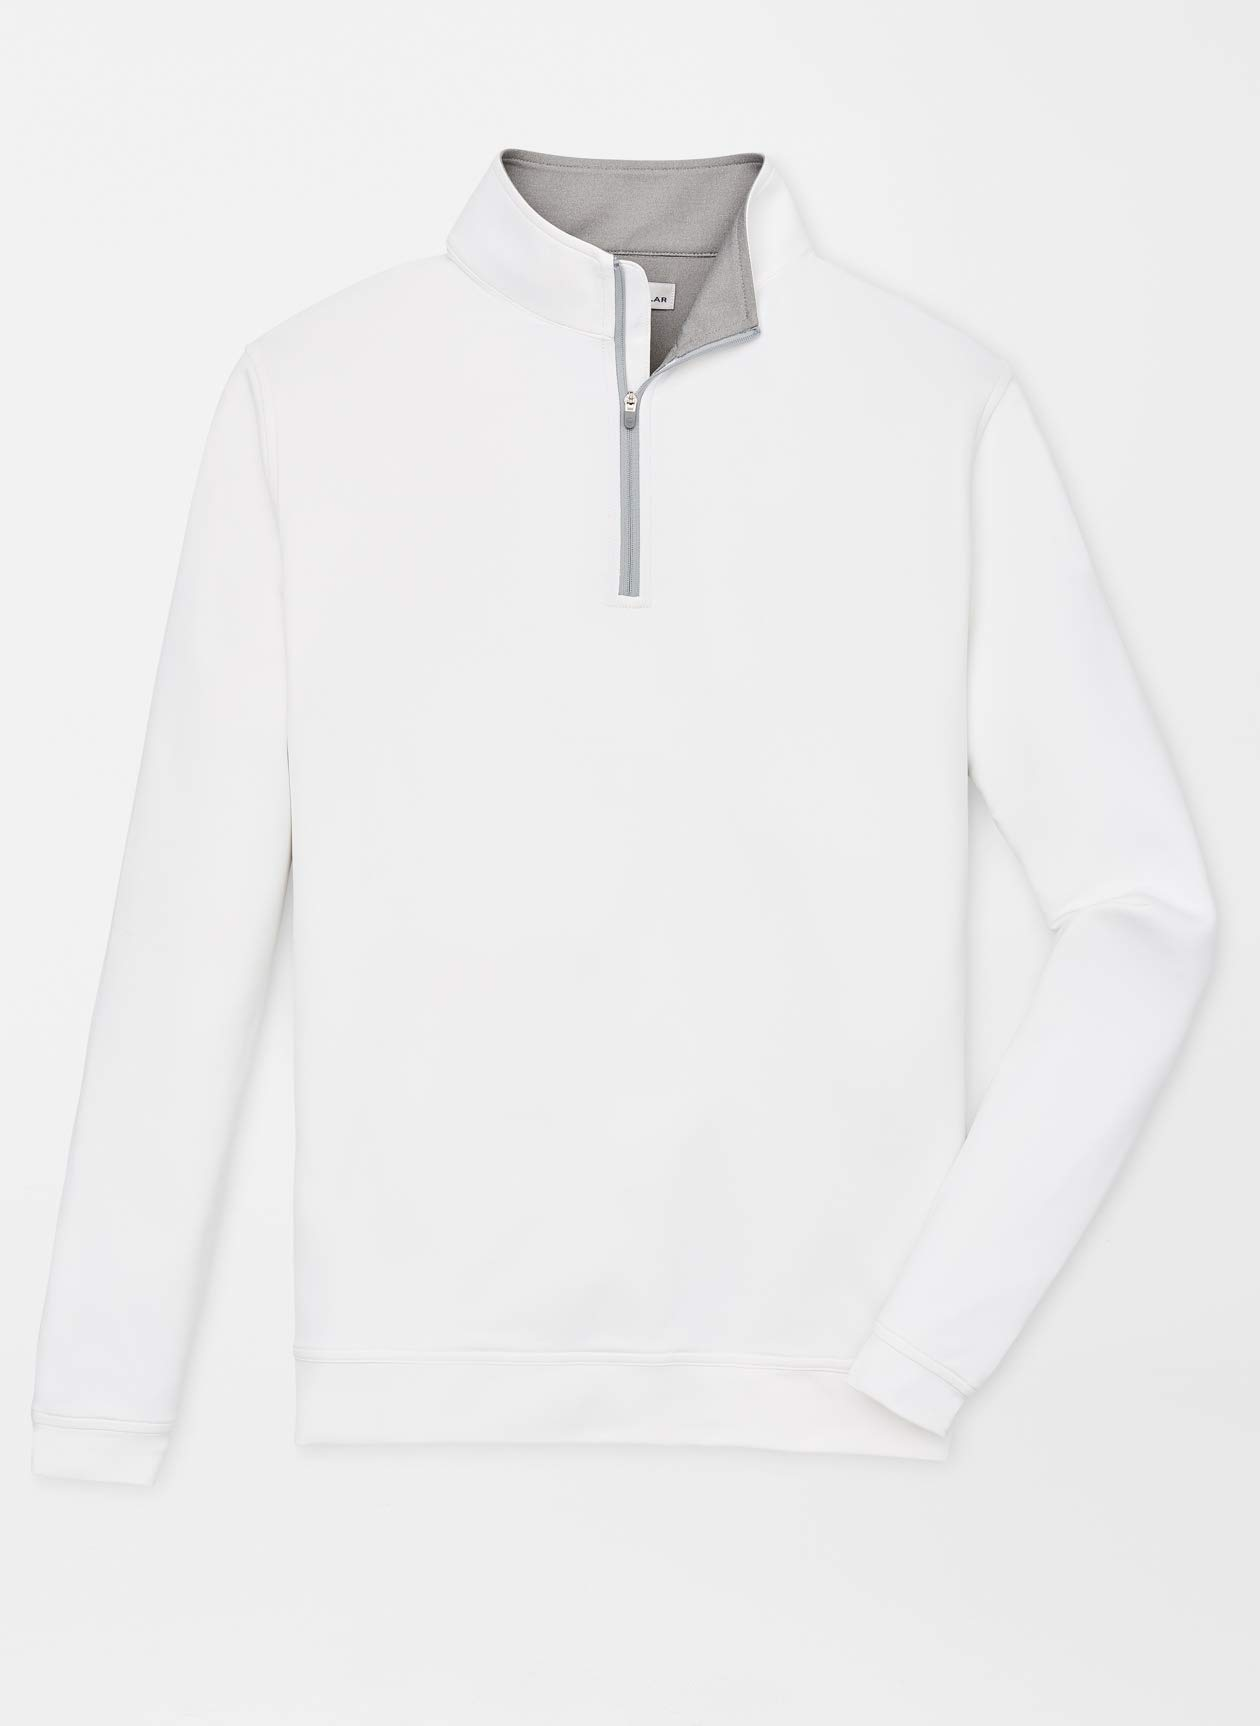 PETER MILLAR Perth Stretch Loop Terry Quarter-Zip White - M by PETER MILLAR